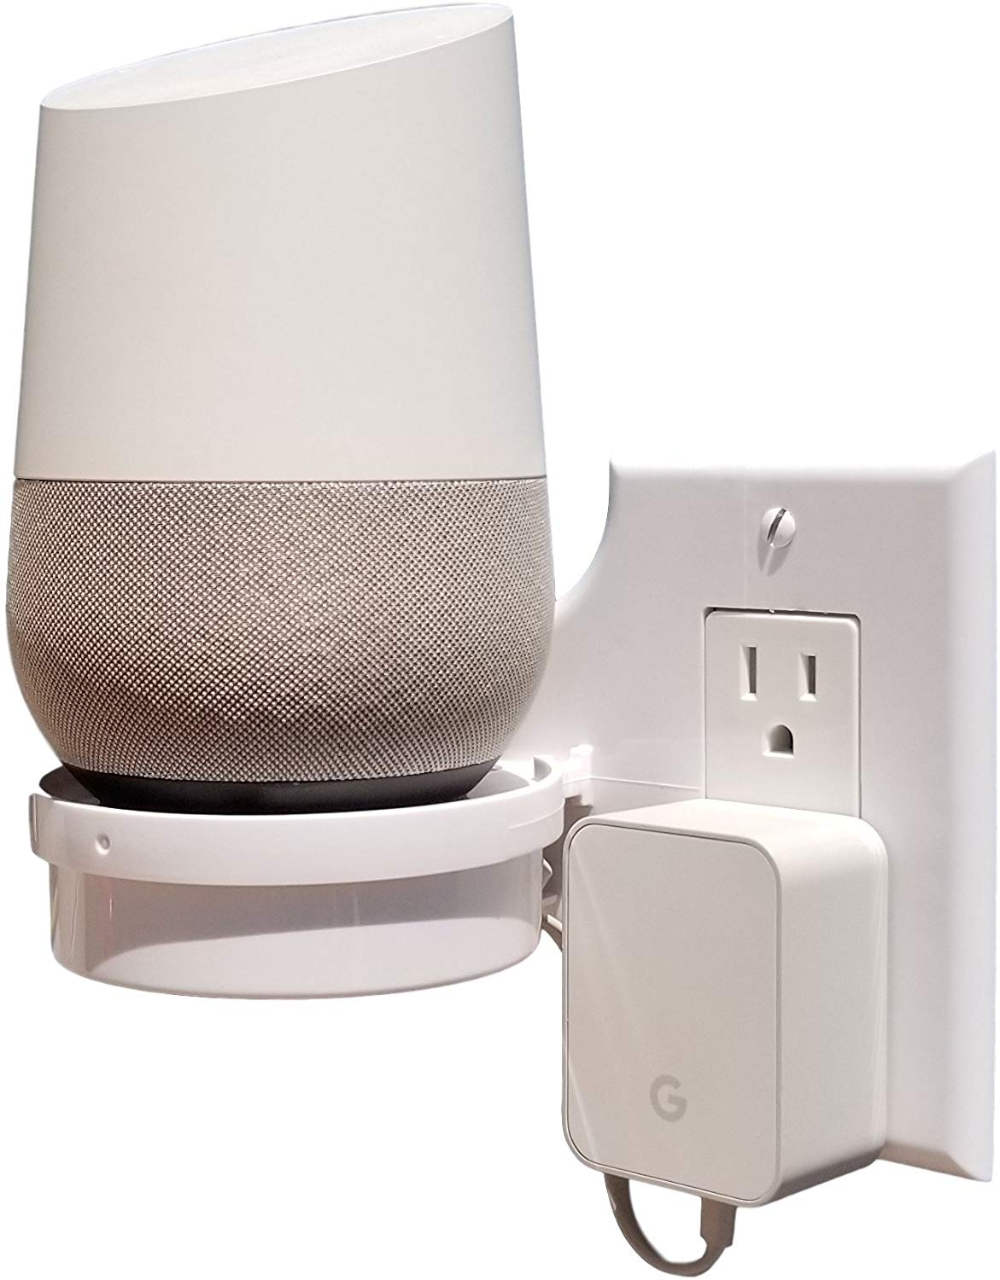 Mount Genie Smart Home Outlet Shelf Hidden Cord Storage And Extra Custom Short Cords Great For Google Home Nest Security Cameras Smart Cord Storage Google Home Smart Home